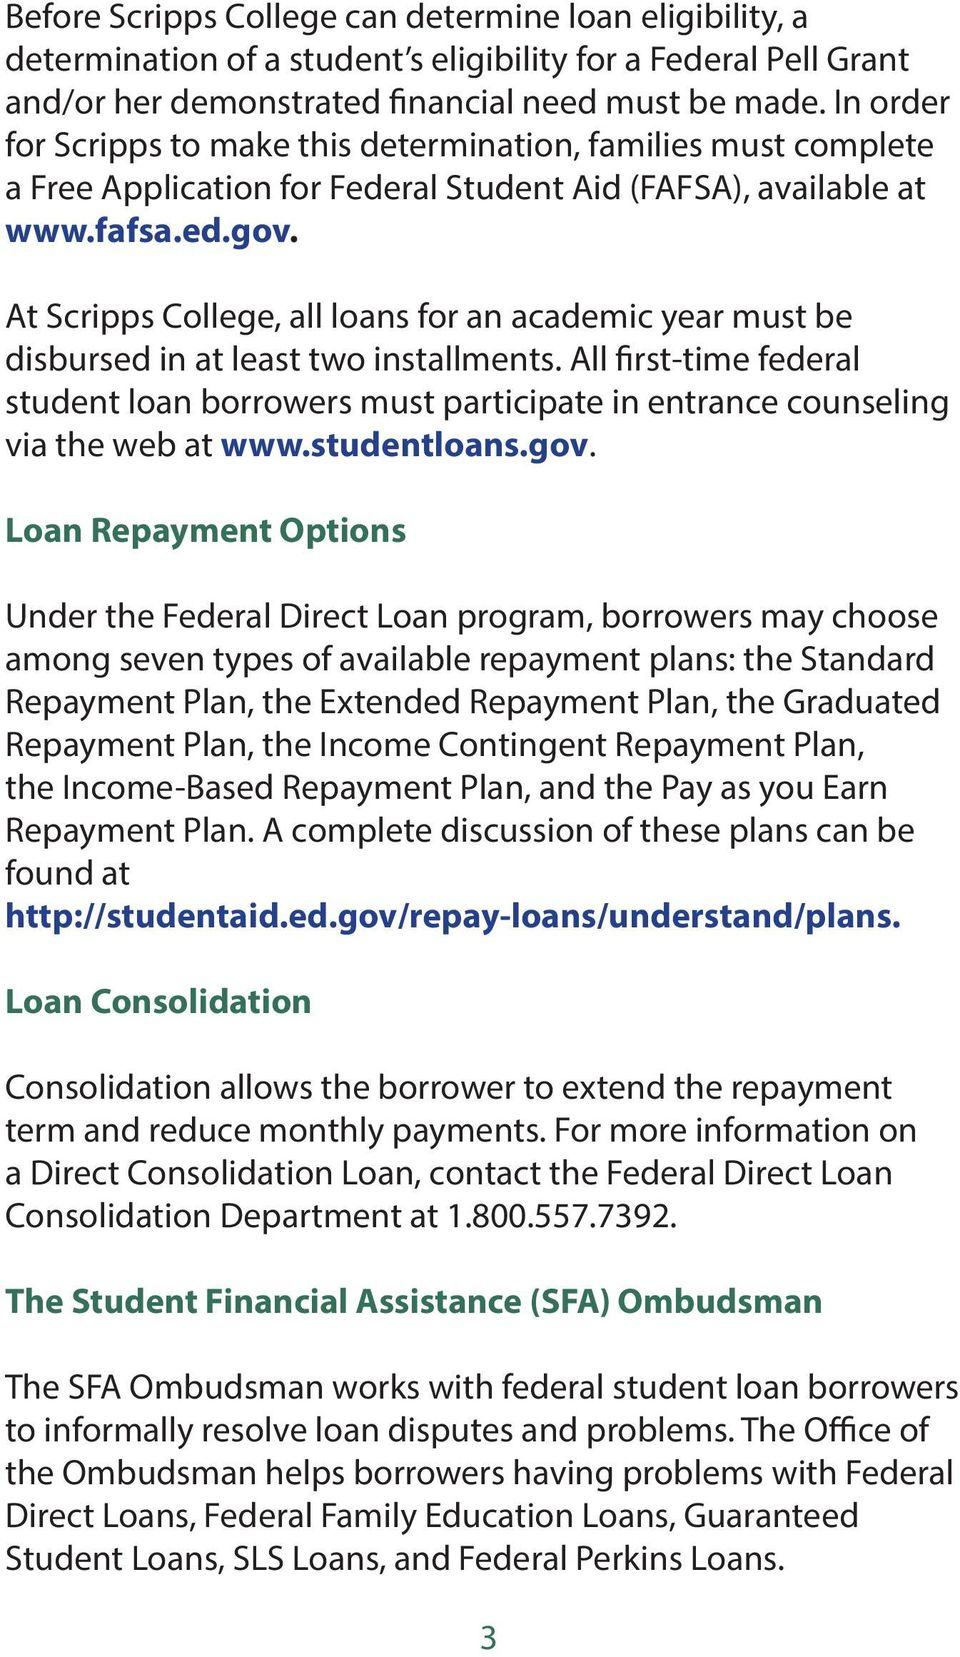 At Scripps College, all loans for an academic year must be disbursed in at least two installments.